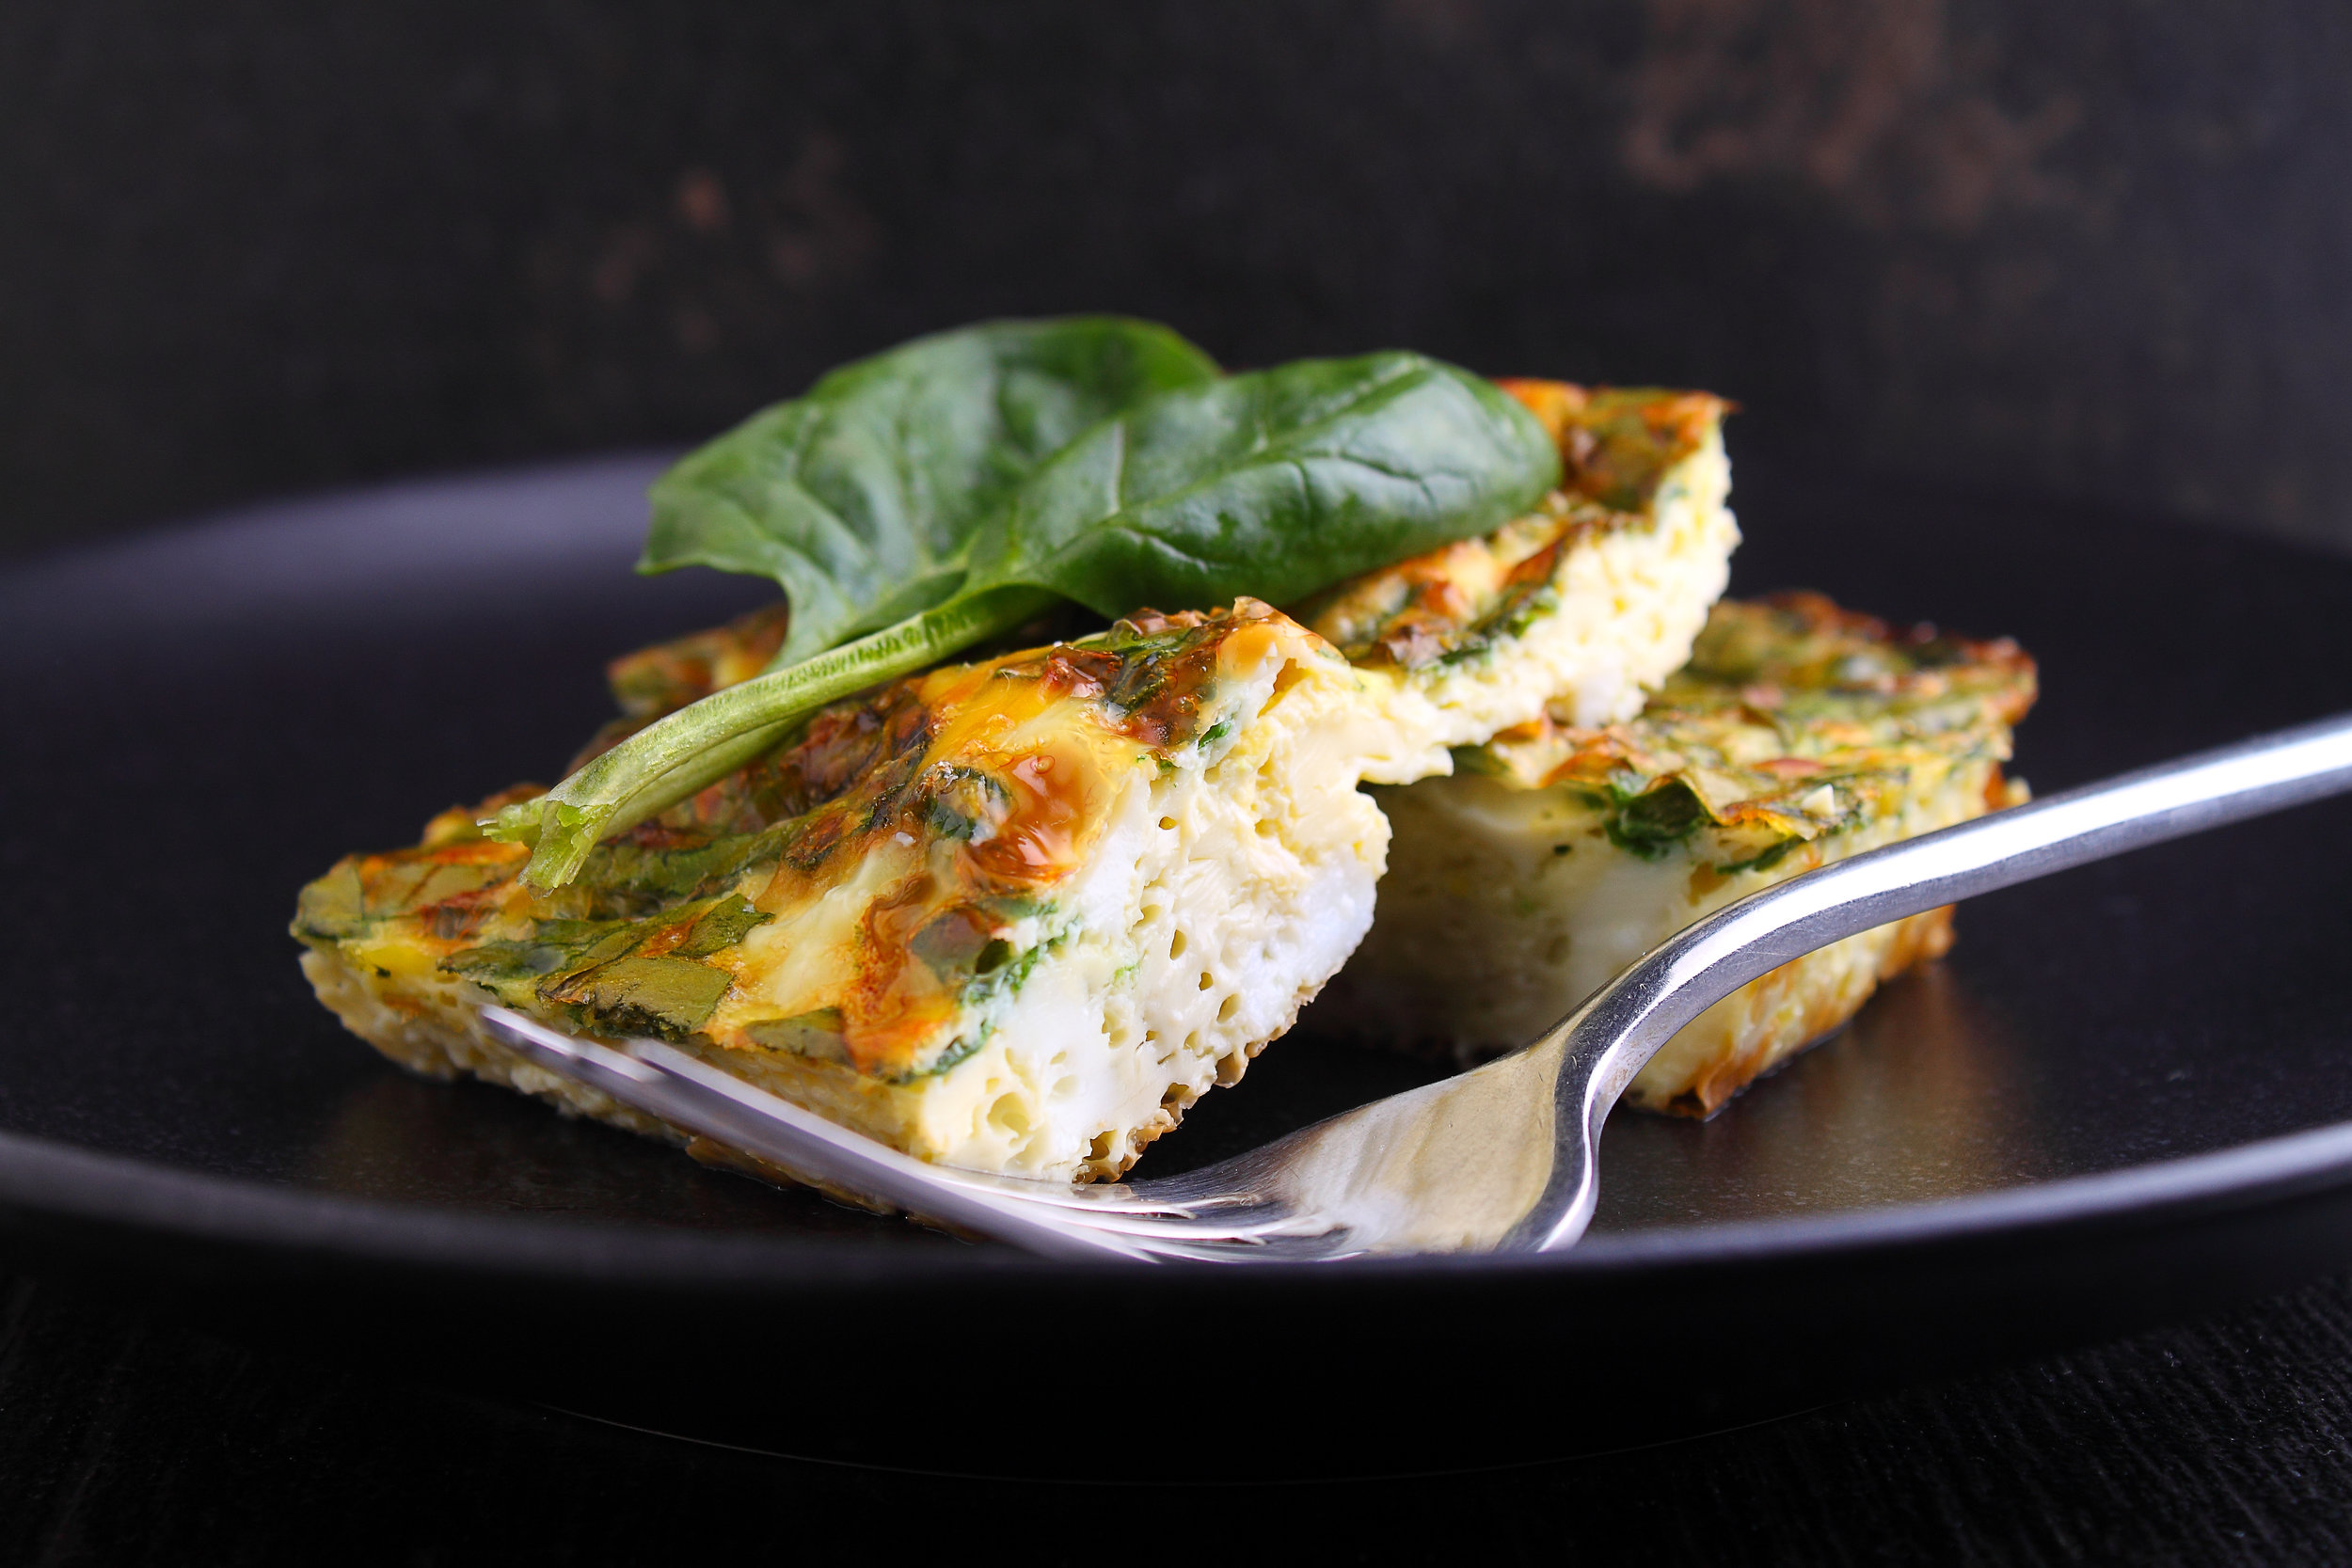 Tuna frittata - A super-simple crowd pleaser.Serve hot straight from the oven, let it cool to room temperature, or chill and slice for a family gathering. It makes for an easy family meal or perfect picnic and party food.Add an extra tin of drained tuna for more protein and healthy omega-3.